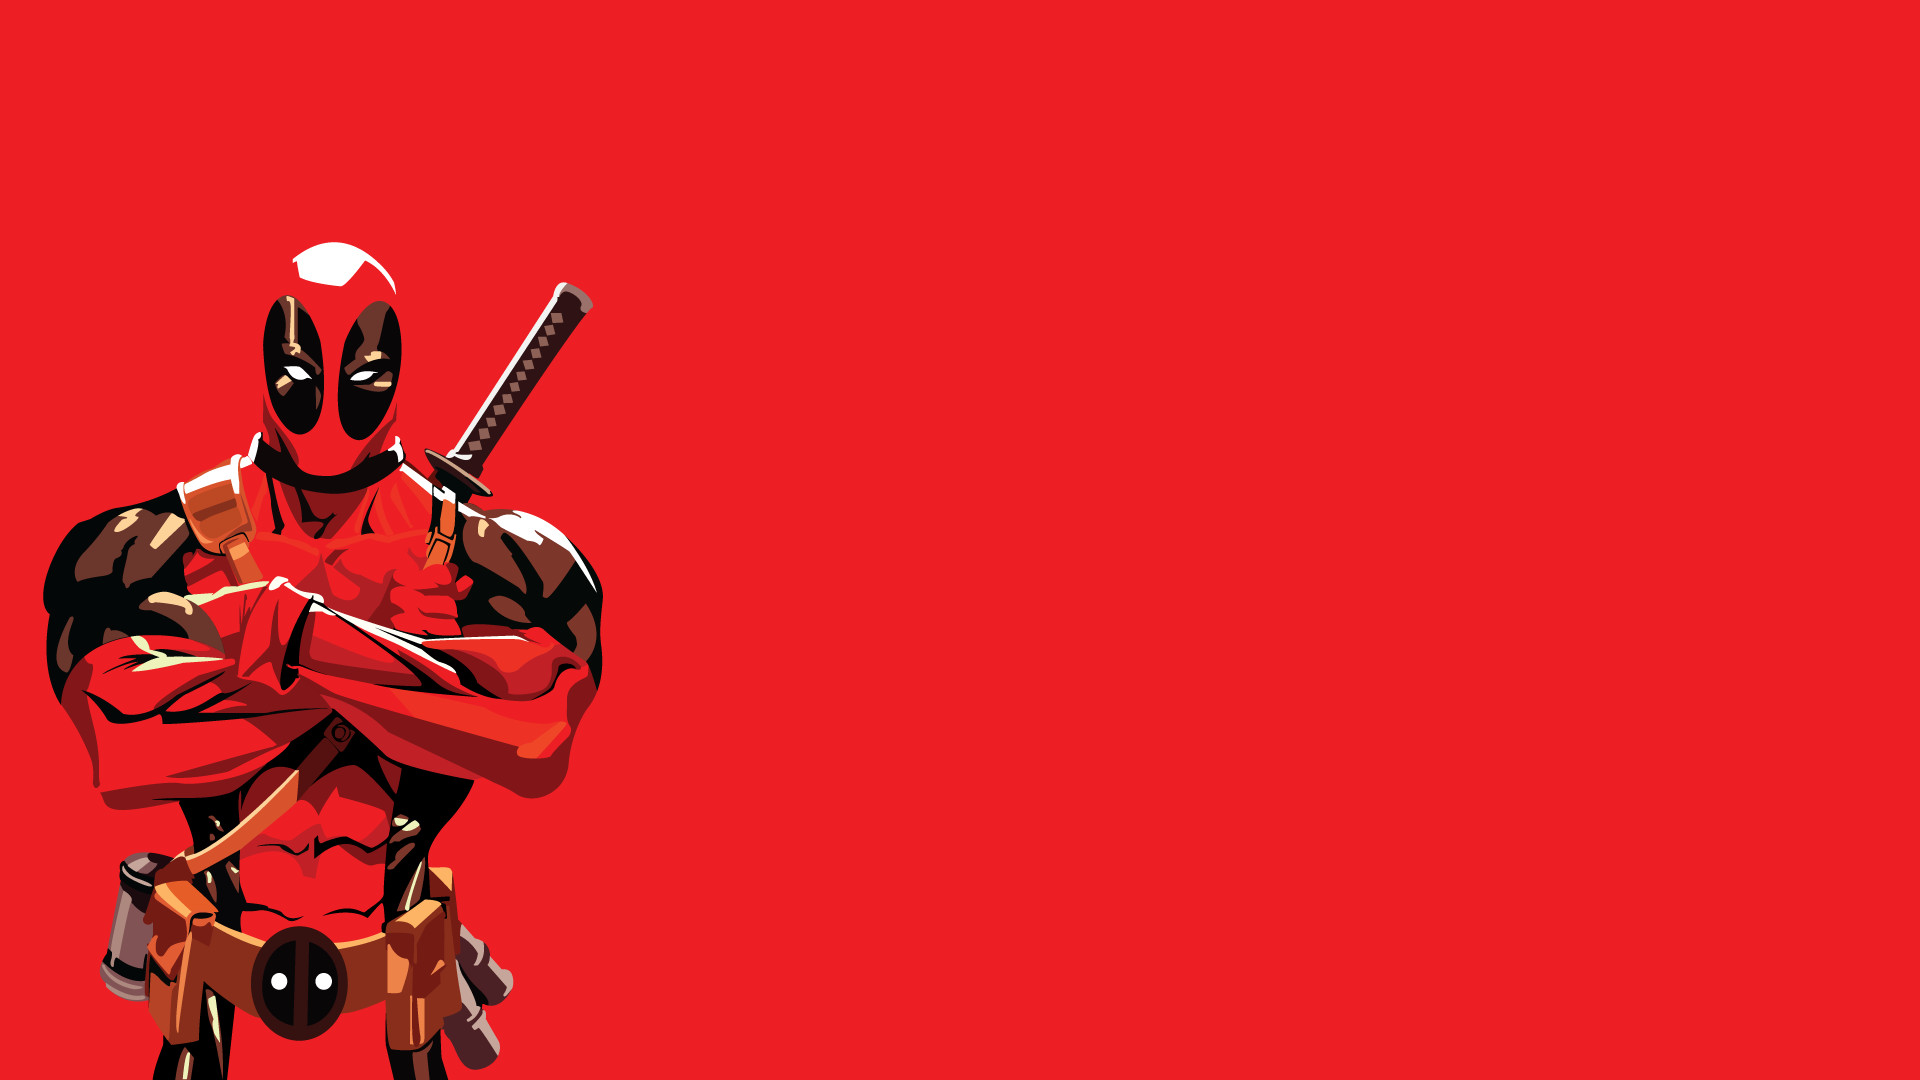 Cool deadpool wallpaper 74 images 1242x2208 image for deadpool iphone wallpaper for android 95y92 voltagebd Image collections